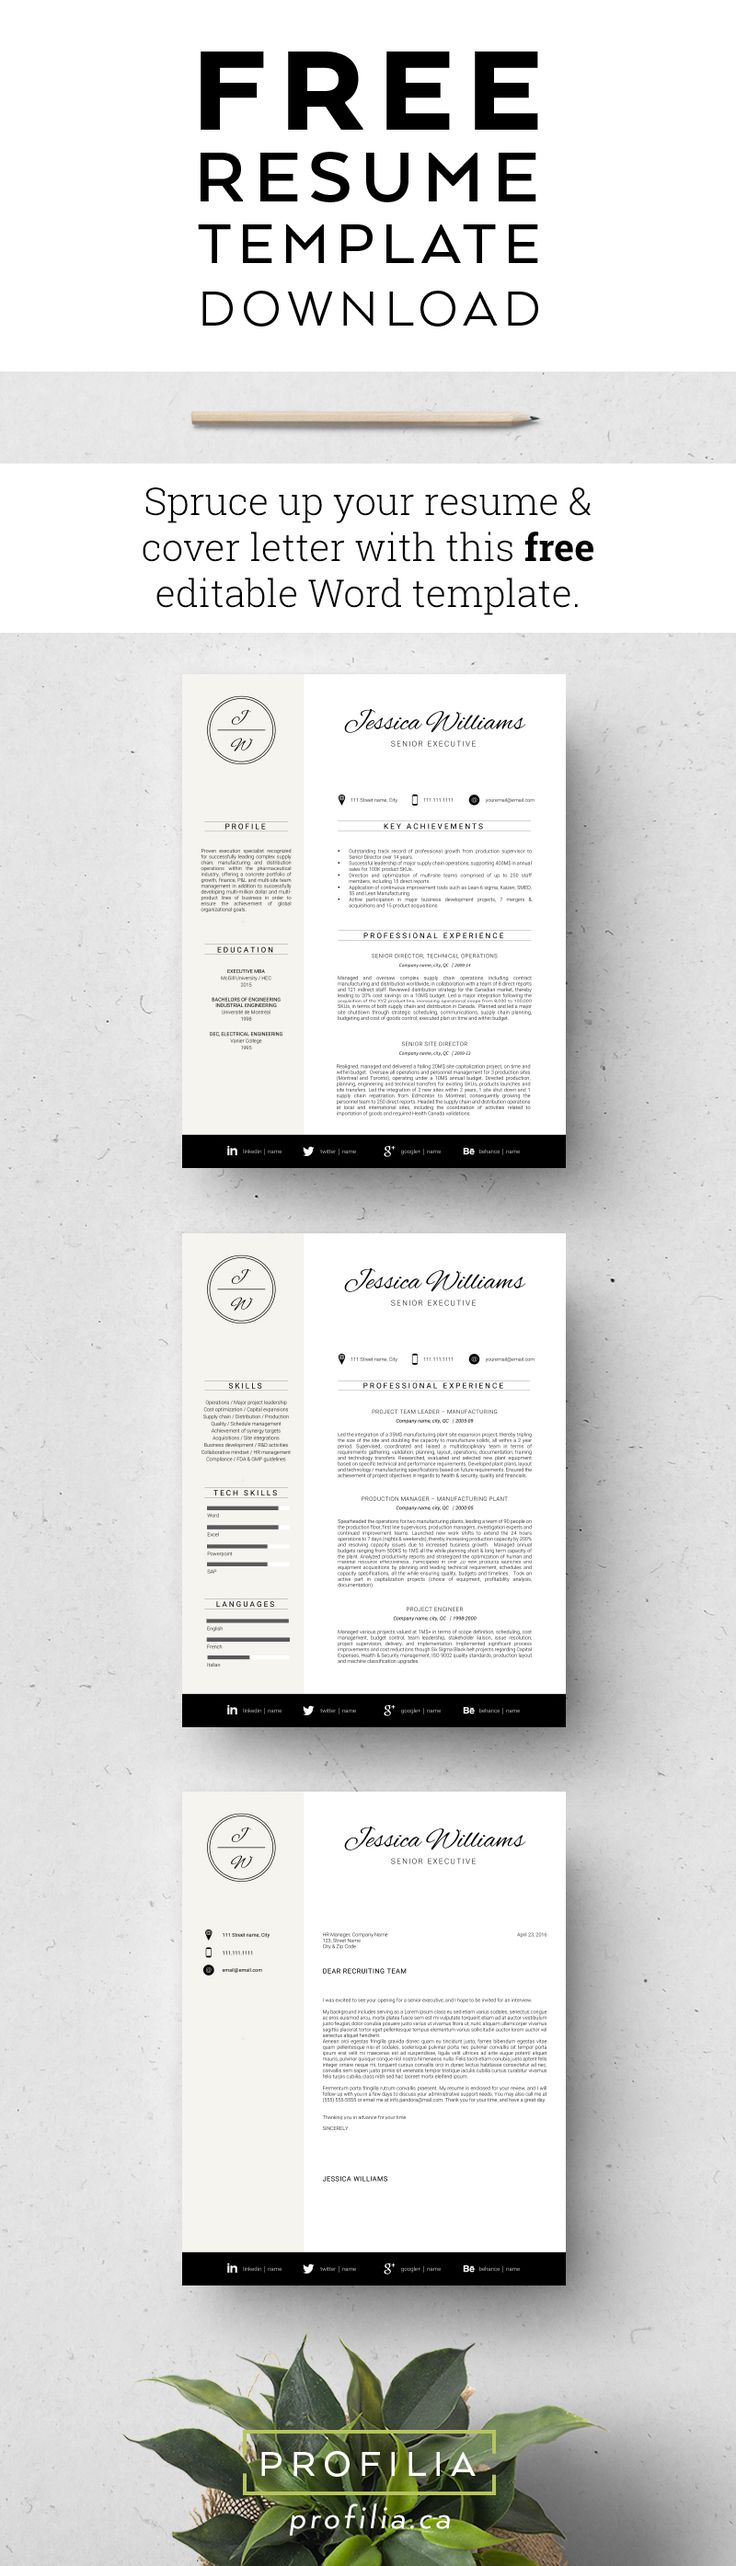 25 unique cover letters ideas on pinterest cover letter tips free resume template refresh your job search with this free resume cover resume cover letter madrichimfo Choice Image